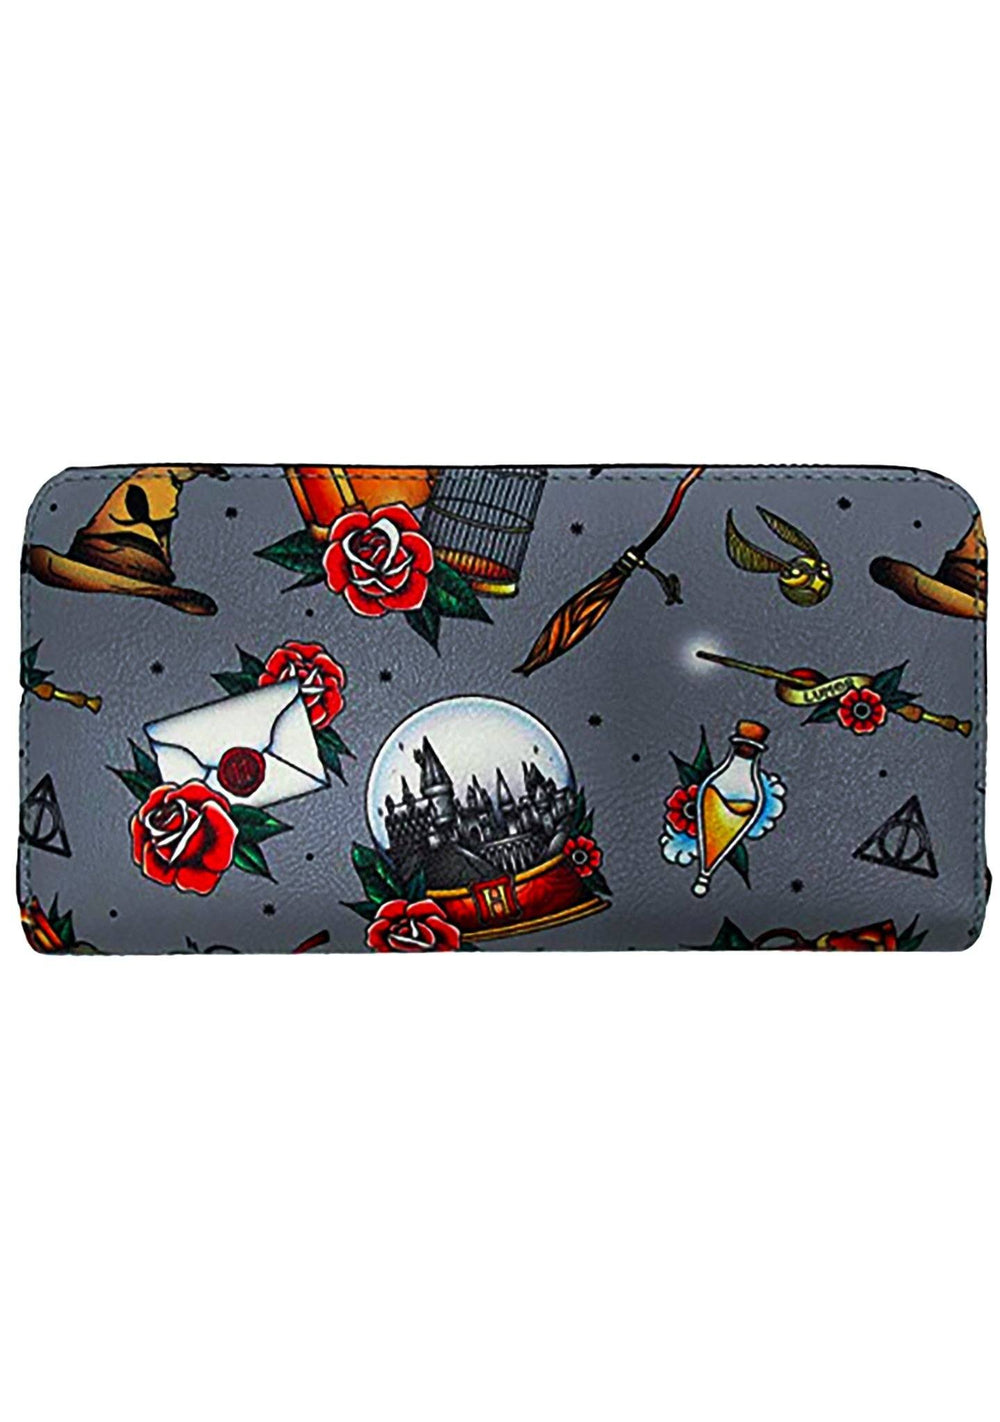 LOUNGEFLY Harry Potter Tattoo Wallet